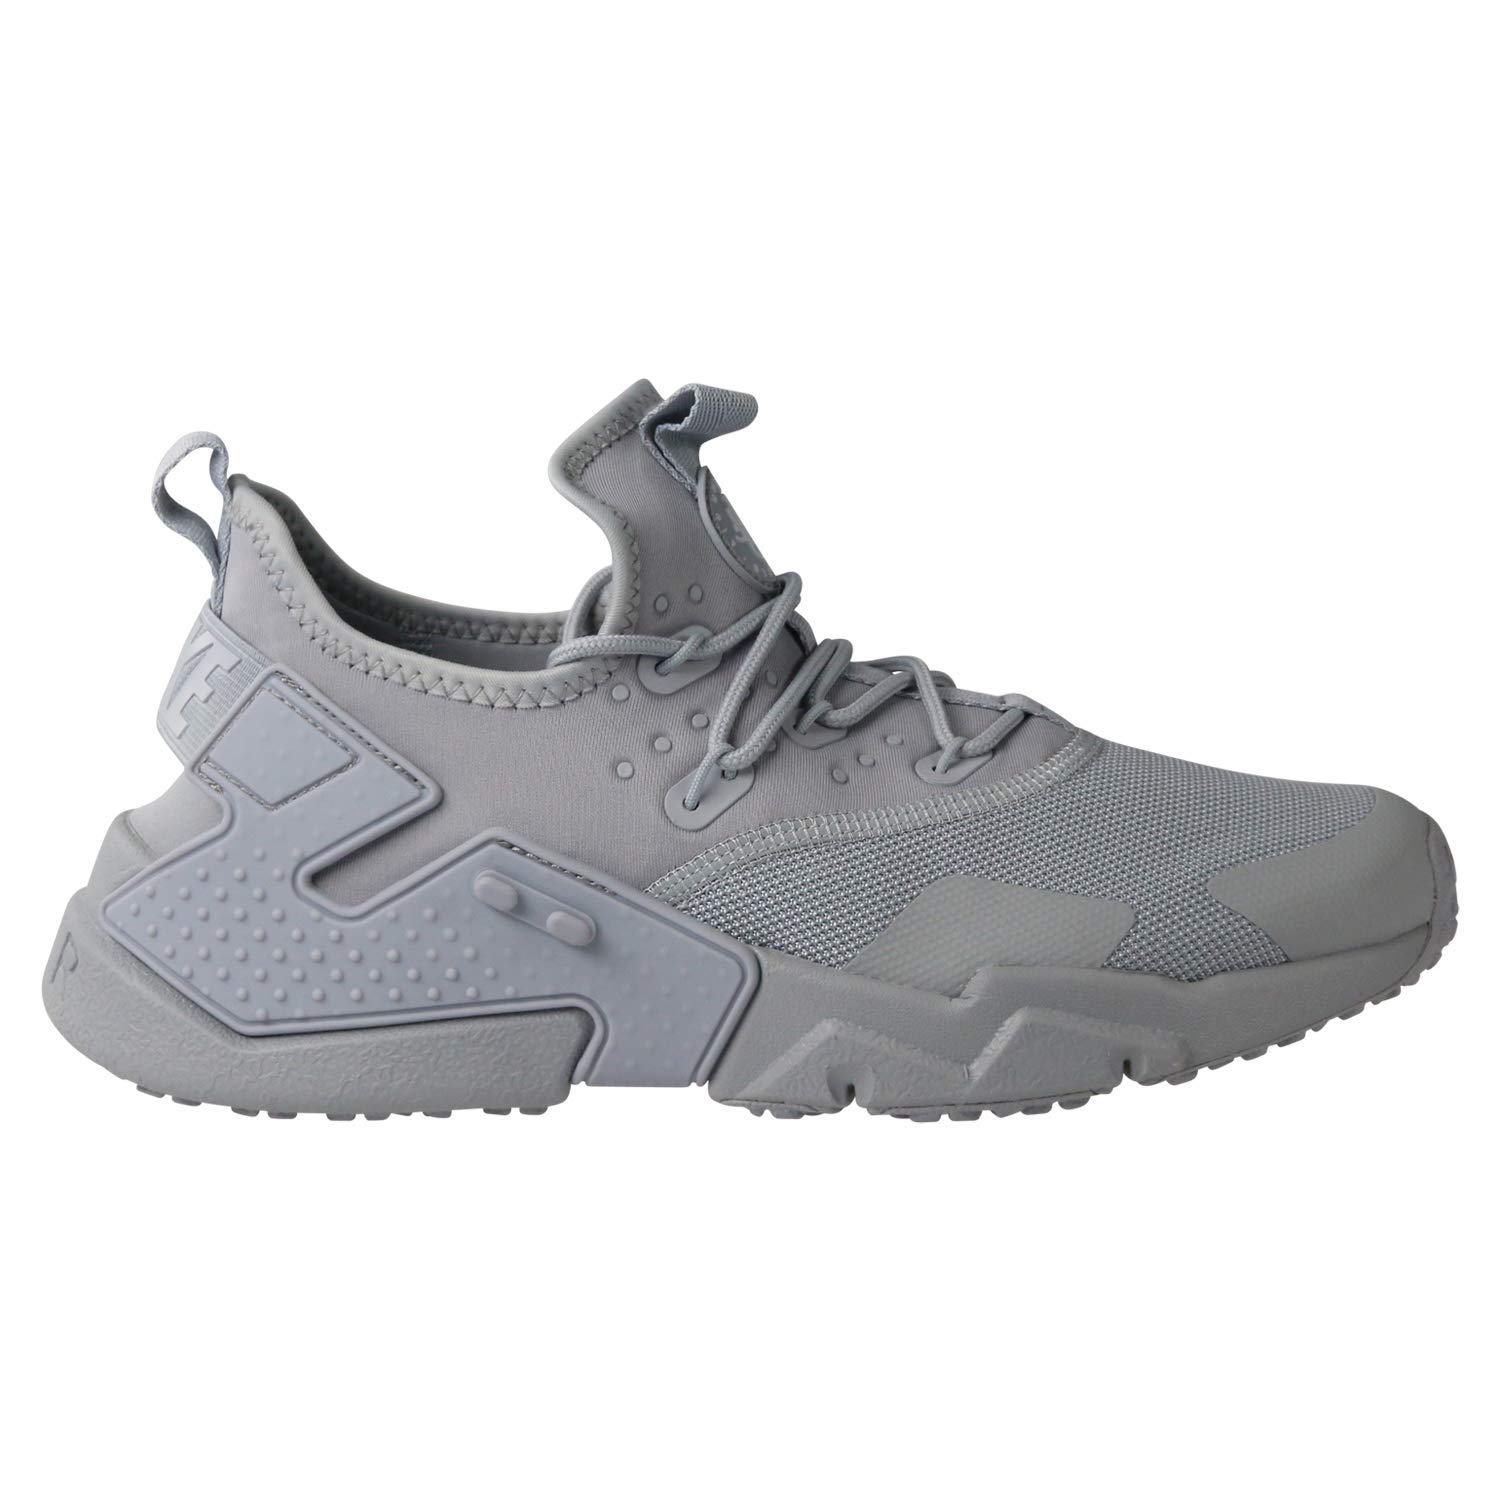 cheaper 4121e d4691 Amazon.com  Nike Mens Air Huarache Drift Running Shoe Wolf GreyWhite  AH7334 004 US 7  Road Running